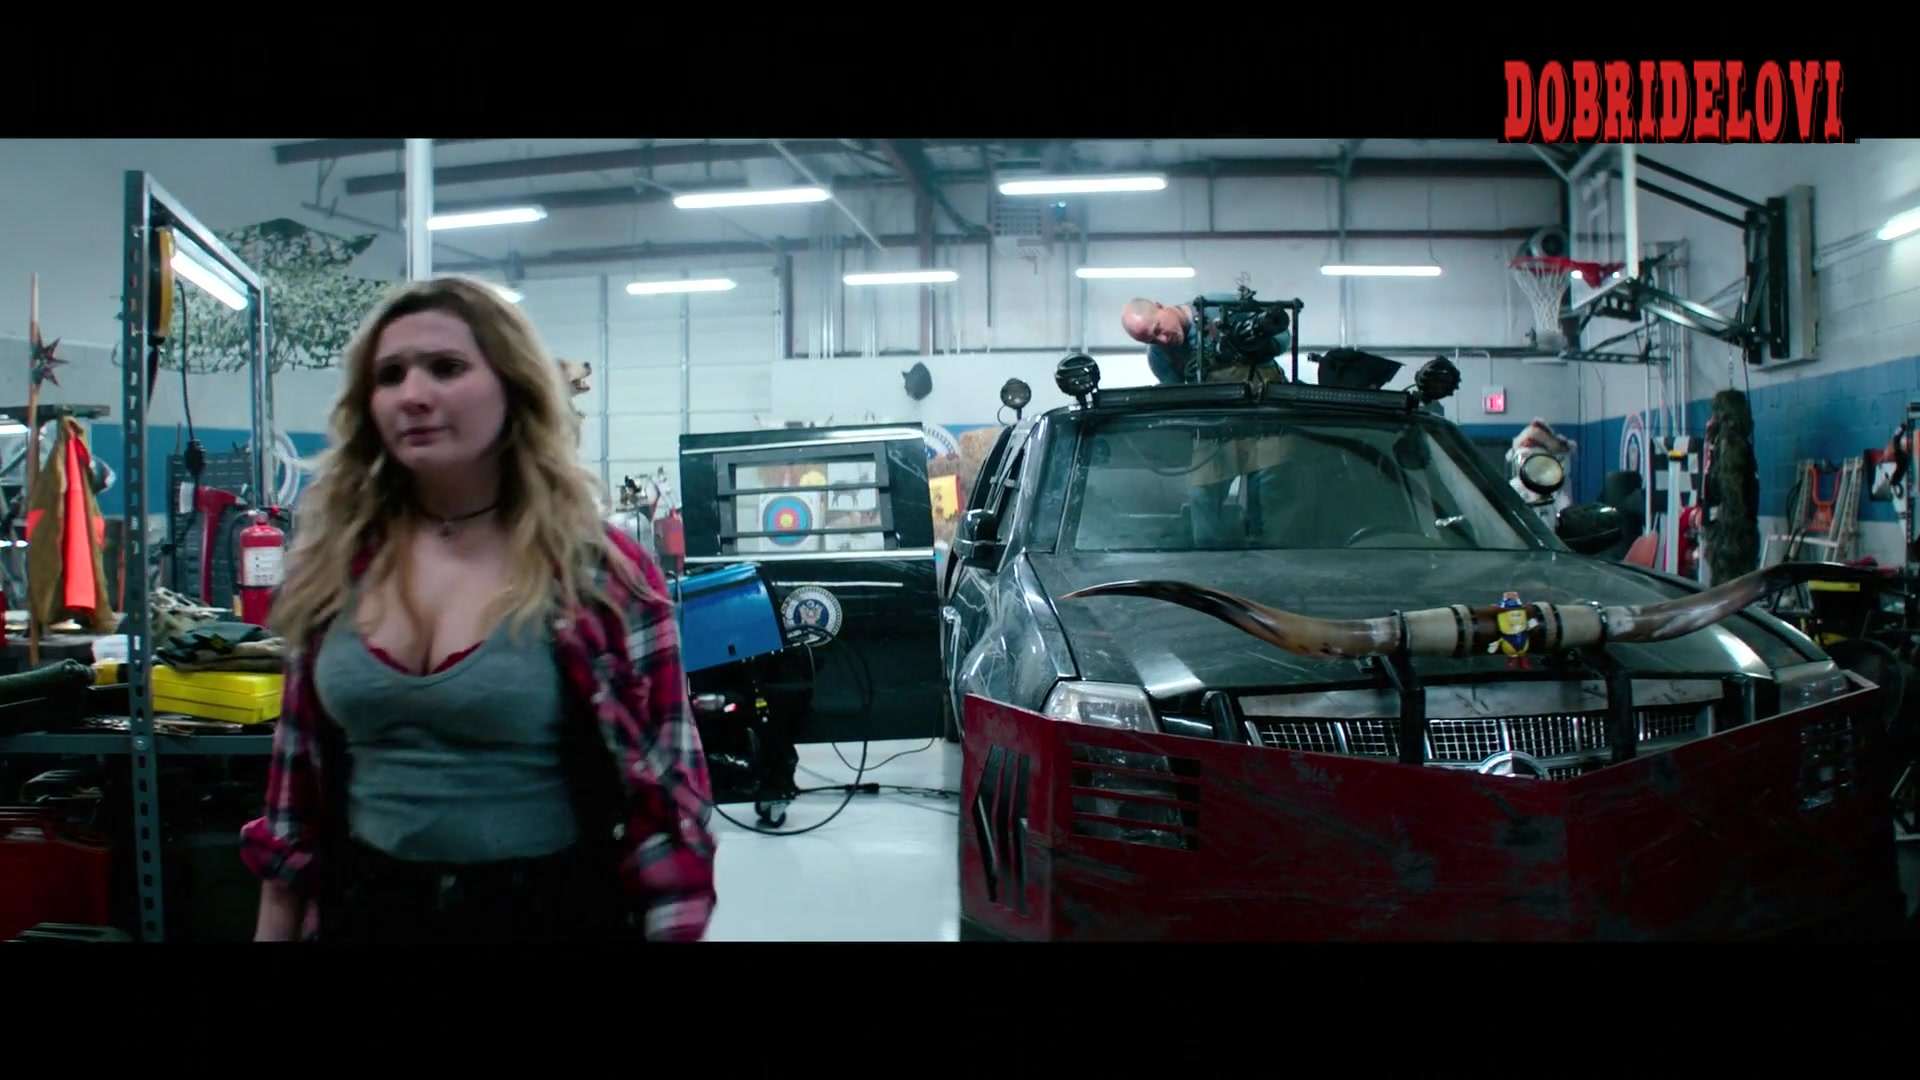 Abigail Breslin shows some cleavage in au autobody shop for Zombieland Double Tap